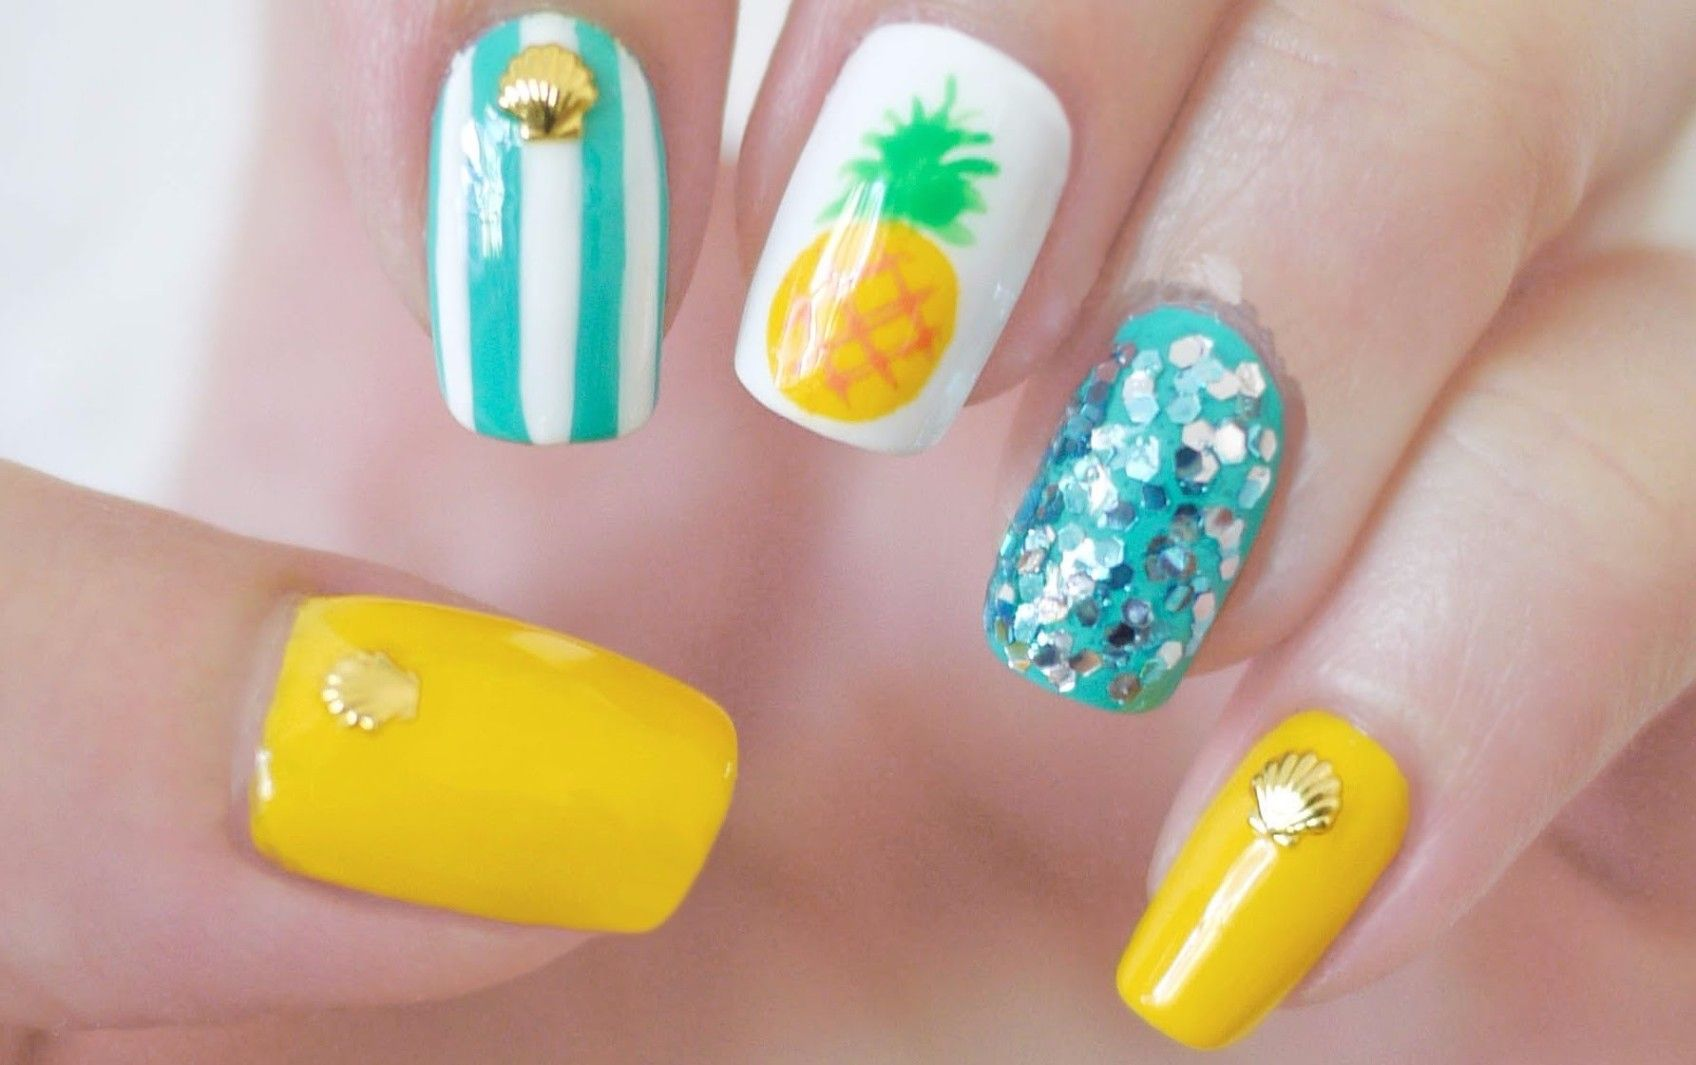 Floral nail art design gives life to your nails by adding white